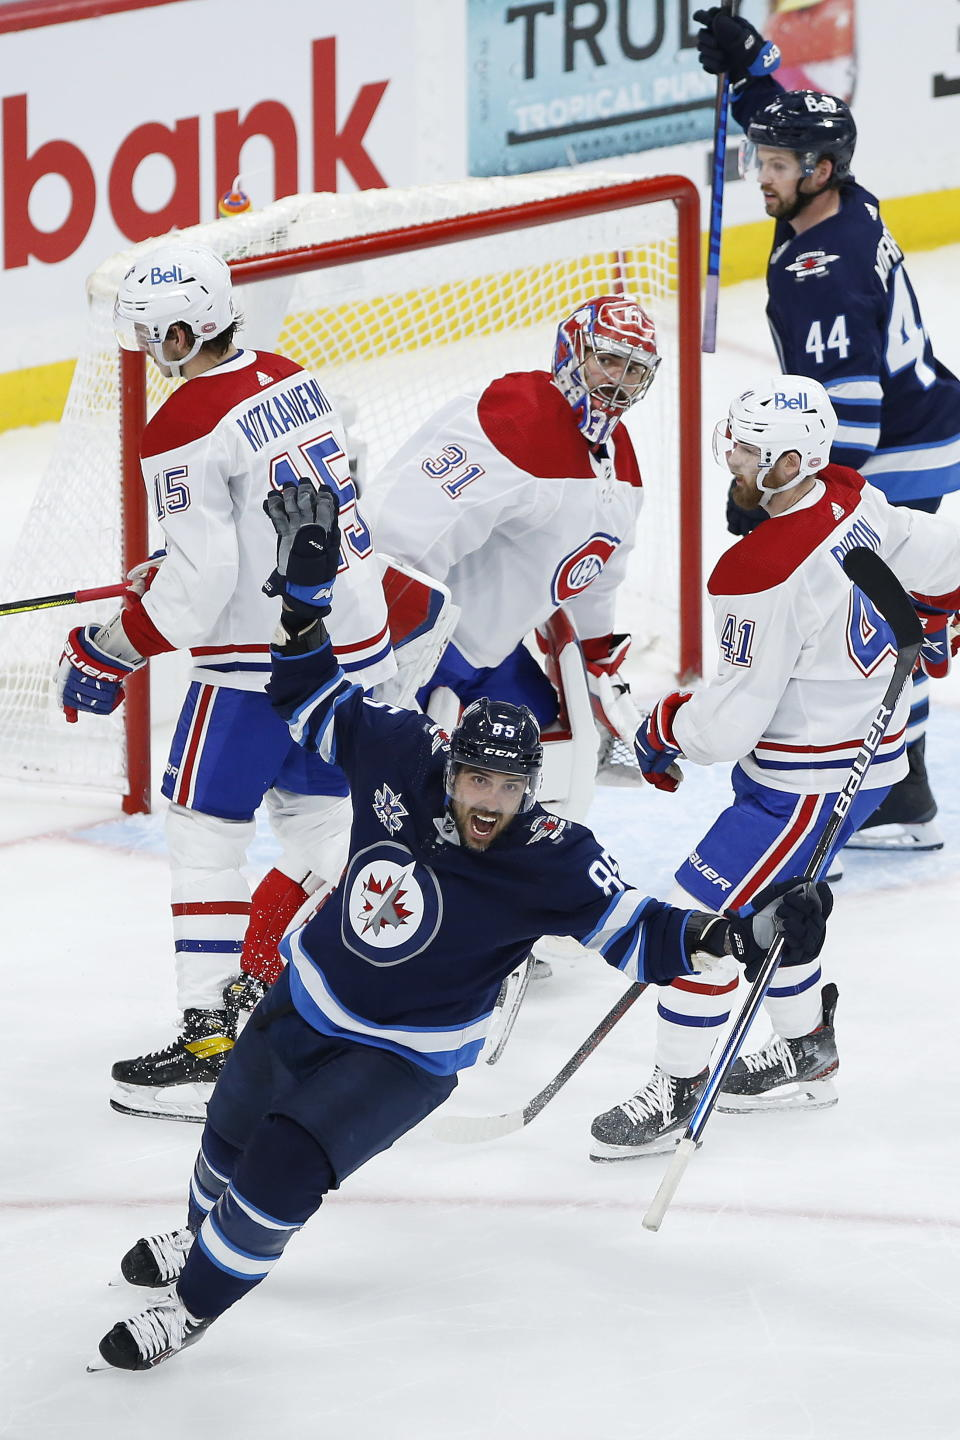 Winnipeg Jets' Mathieu Perreault (85) celebrates a goal by Derek Forbort, not seen, against Montreal Canadiens goaltender Carey Price (31) during the third period of Game 1 of an NHL hockey Stanley Cup second-round playoff series Wednesday, June 2, 2021, in Winnipeg, Manitoba. (John Woods/The Canadian Press via AP)